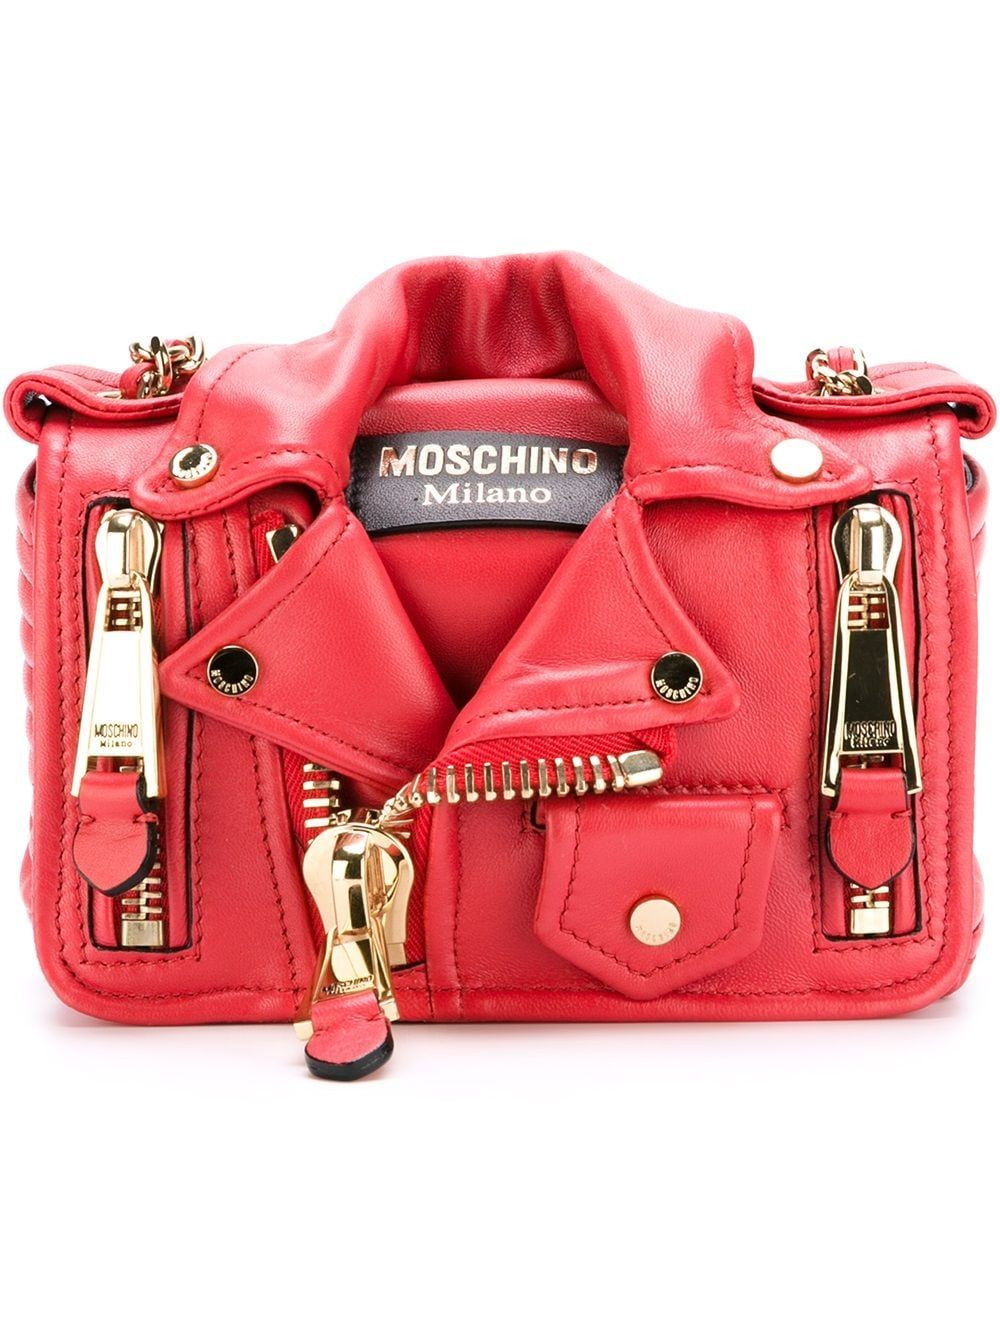 Moschino Leathers MOSCHINO WOMEN'S A743080020115 RED LEATHER SHOULDER BAG